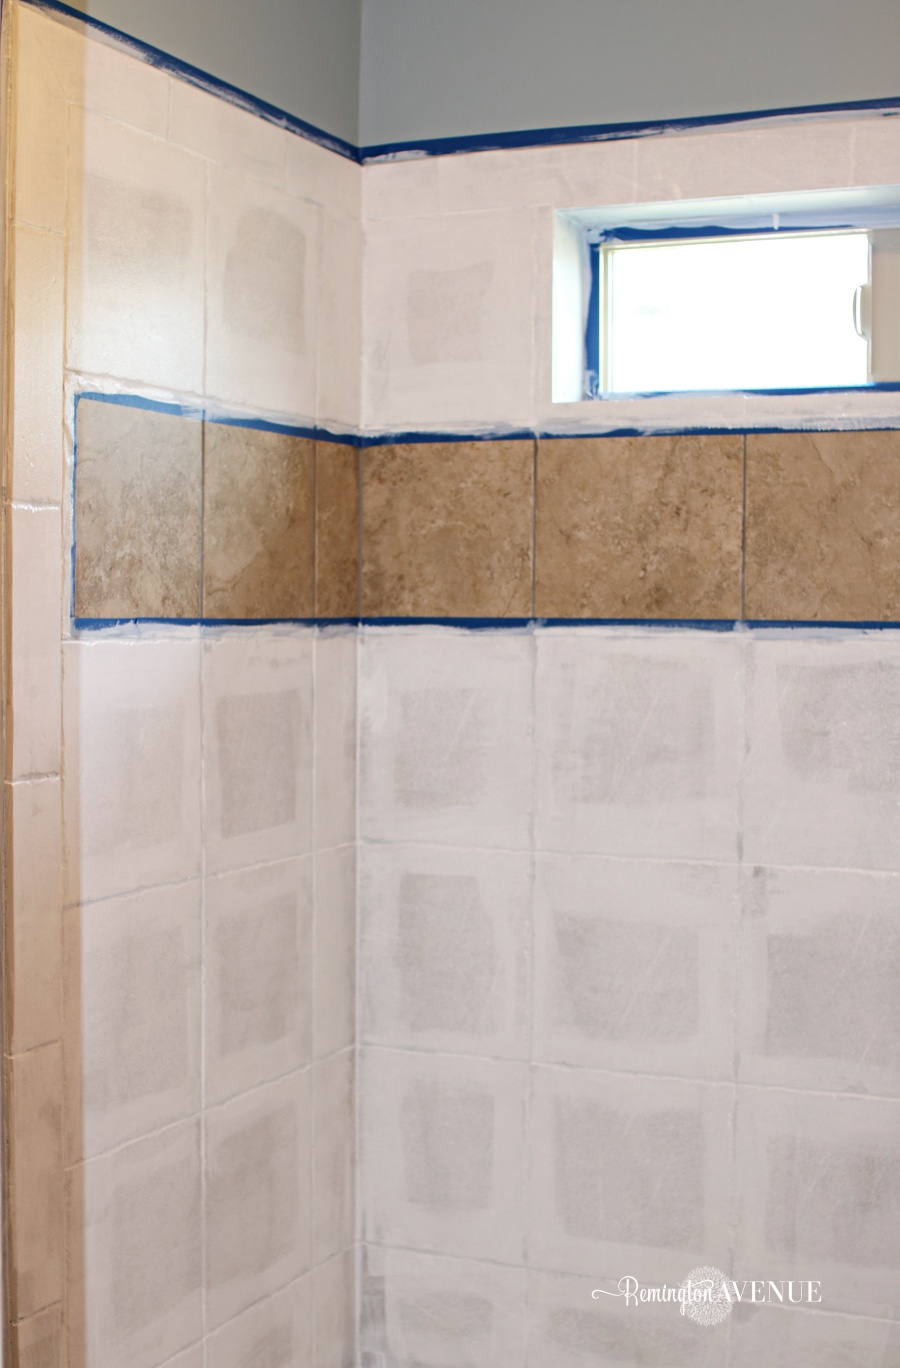 How To Paint Shower Tile  Remington Avenue. What Is The Best Countertop Material For A Kitchen. Tile Backsplashes For Kitchens Ideas. Slate Floors In Kitchen. Subway Tile In Kitchen Backsplash Picture. Good Color Schemes For Kitchens. Color Palettes For Kitchens. How To Backsplash Kitchen. Painting Floor Tiles In Kitchen